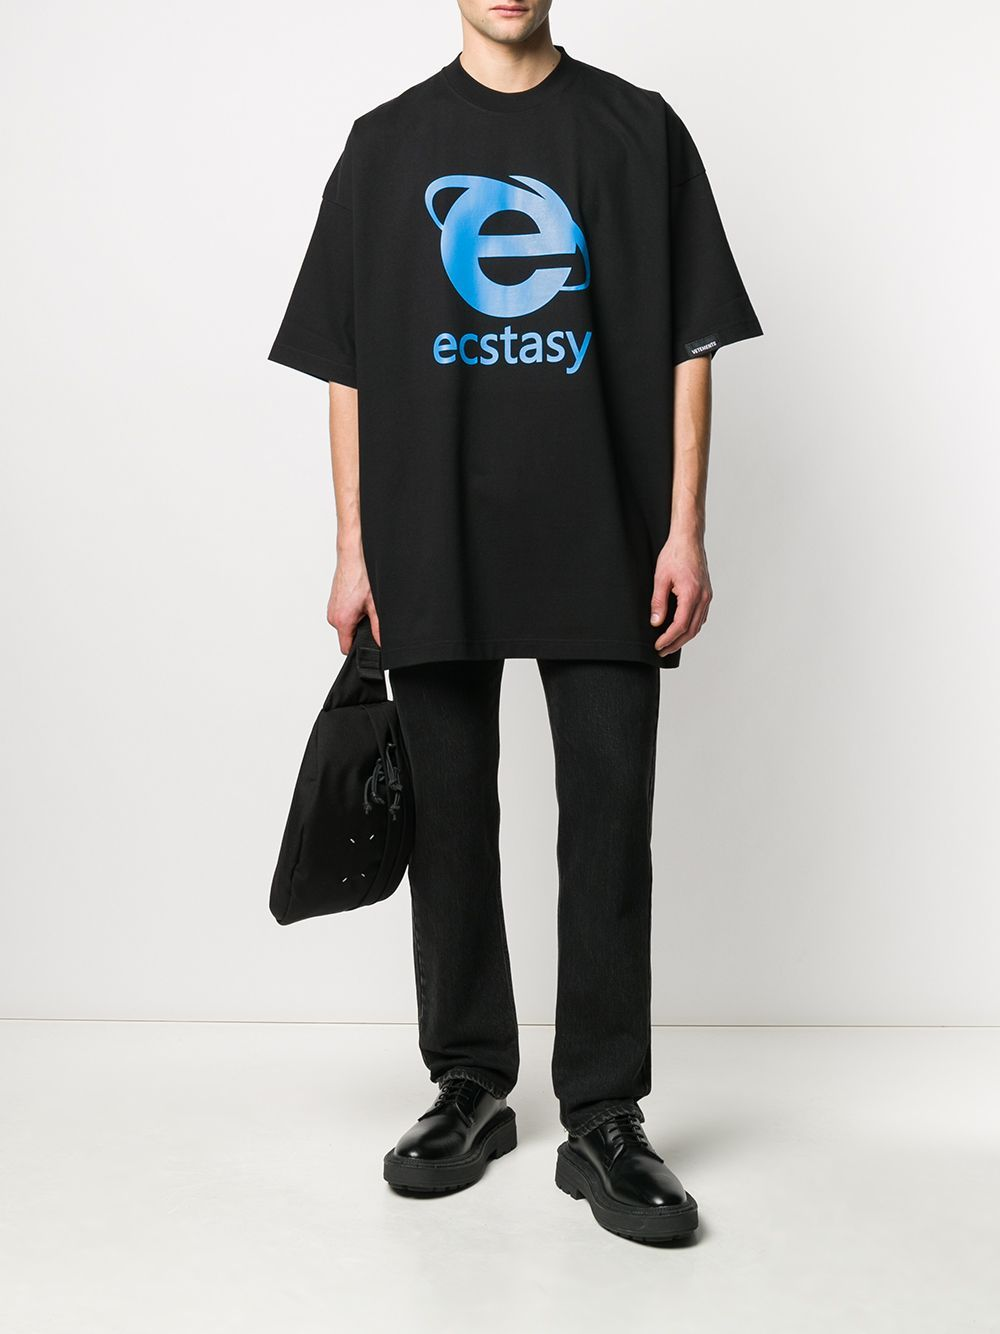 VETEMENTS ecstasy logo t-shirt black